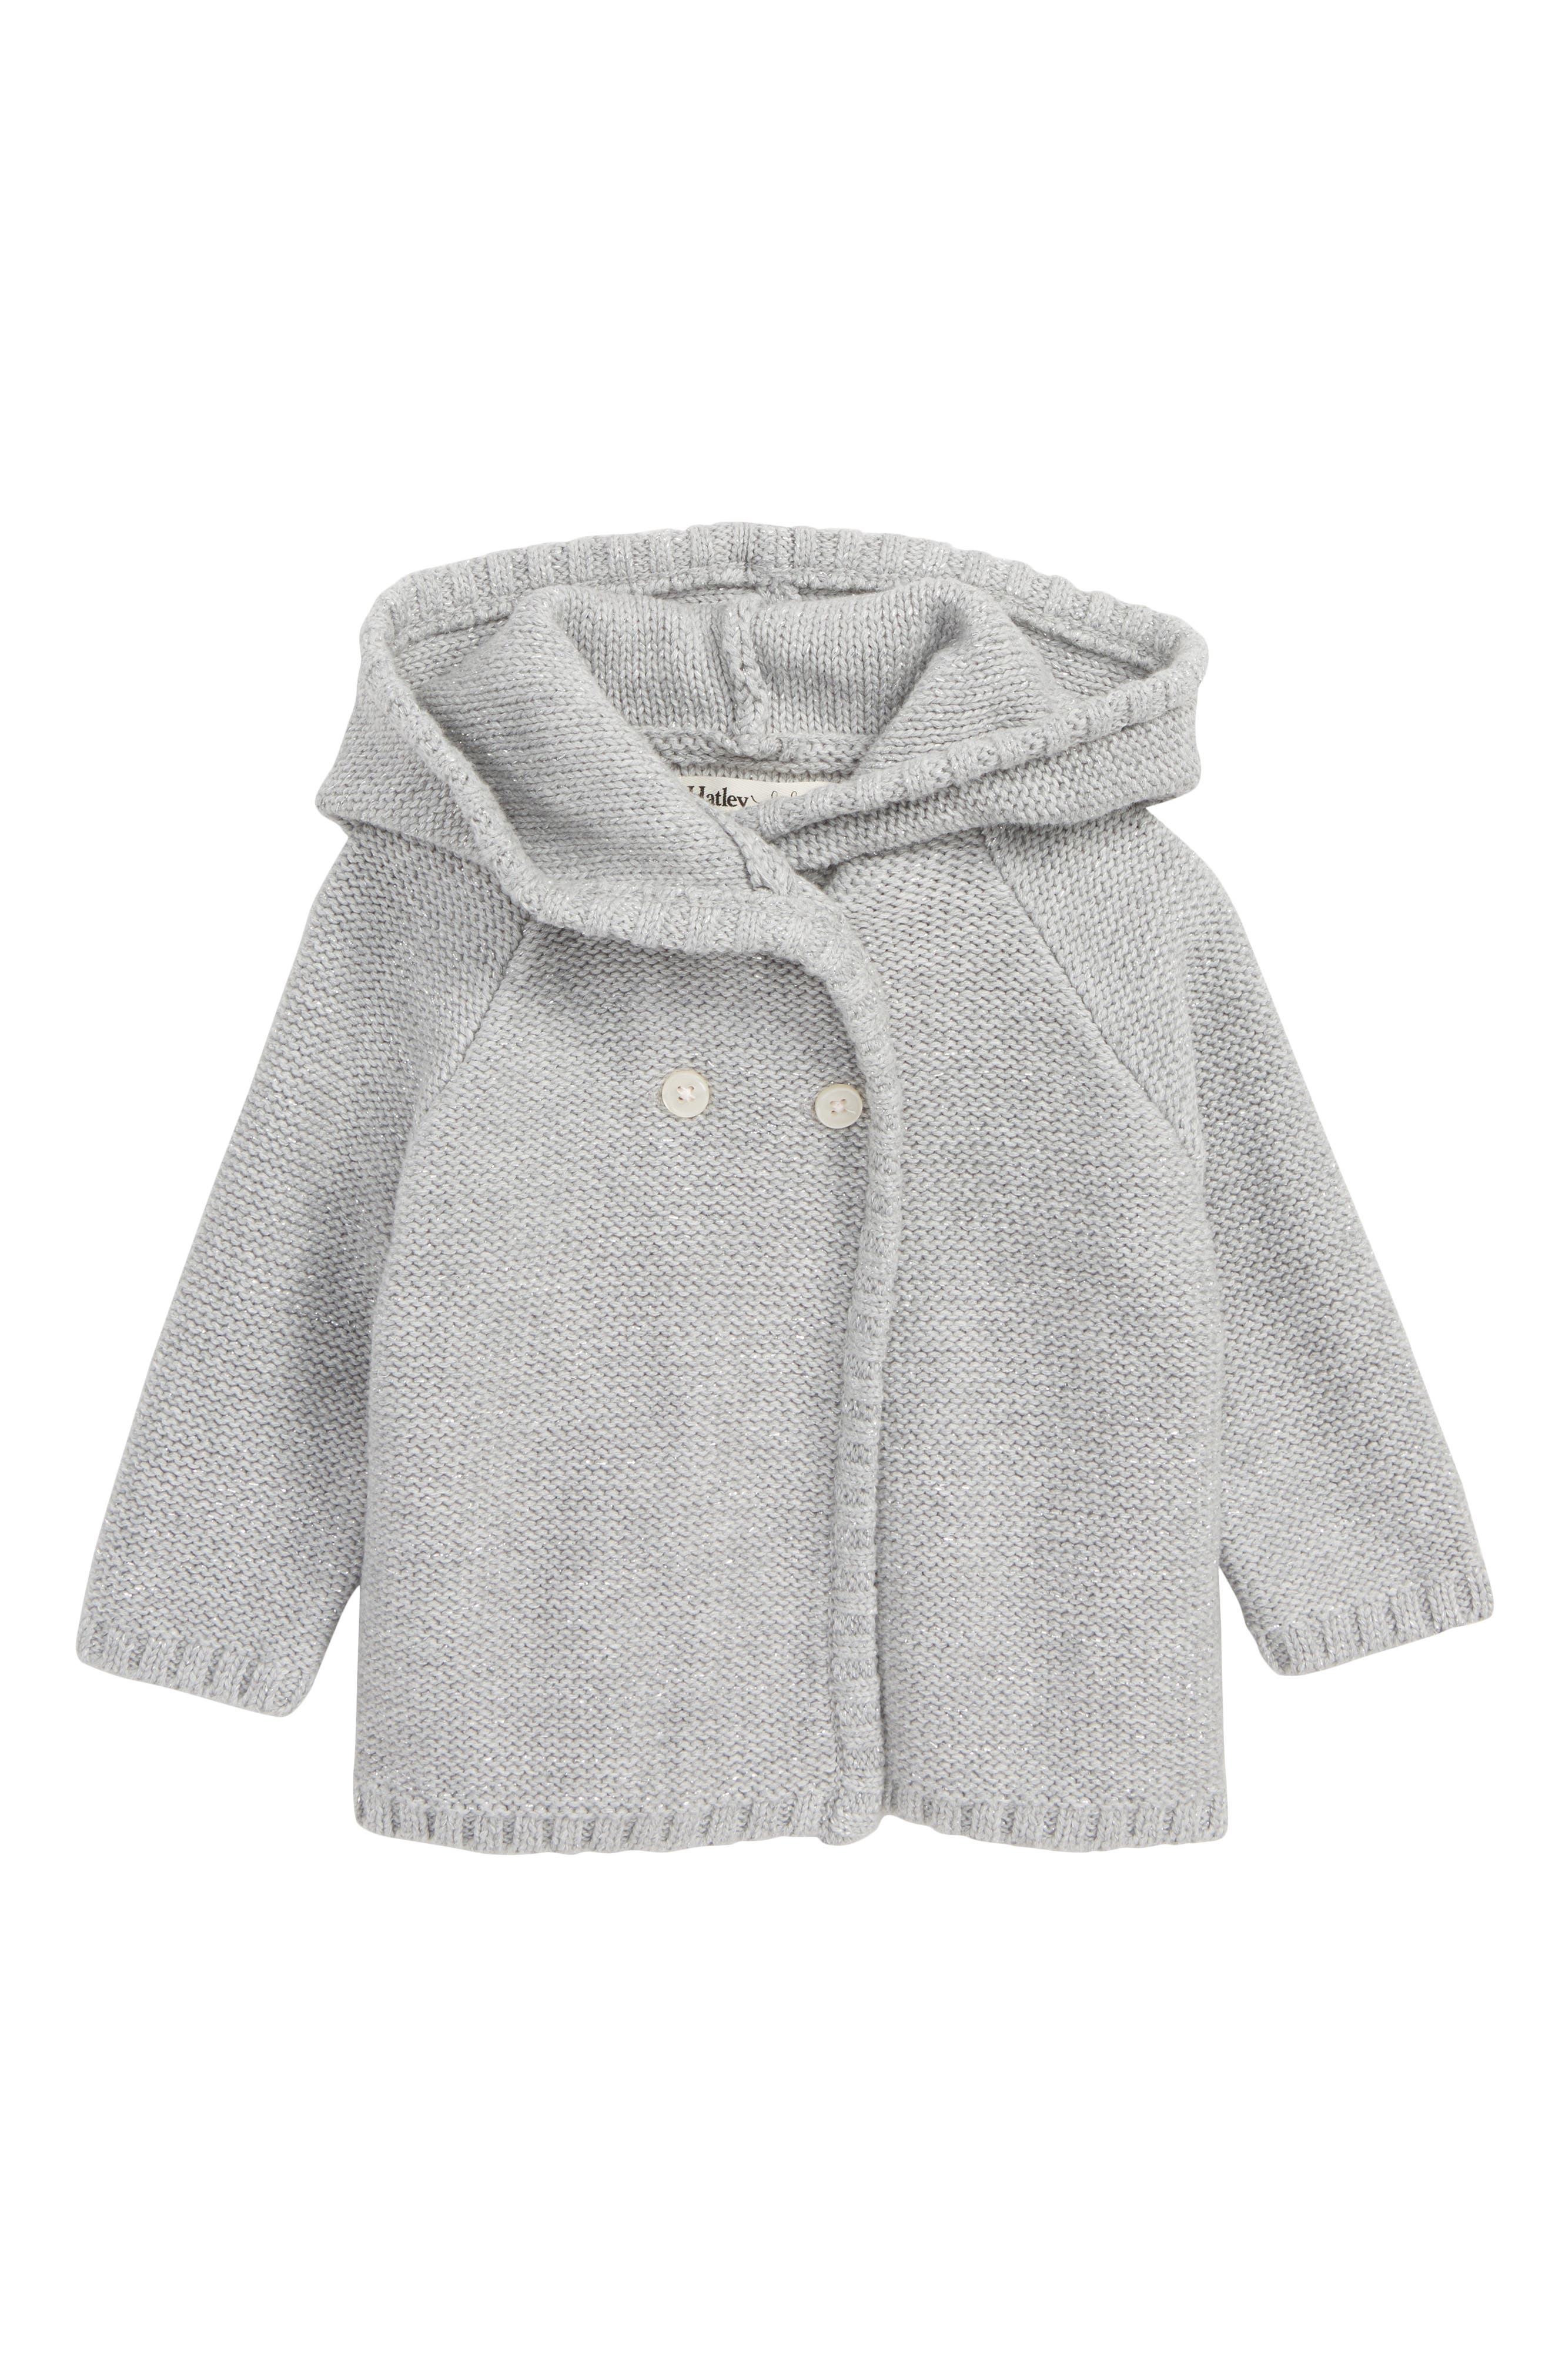 HATLEY, Hooded Sweater, Main thumbnail 1, color, 020